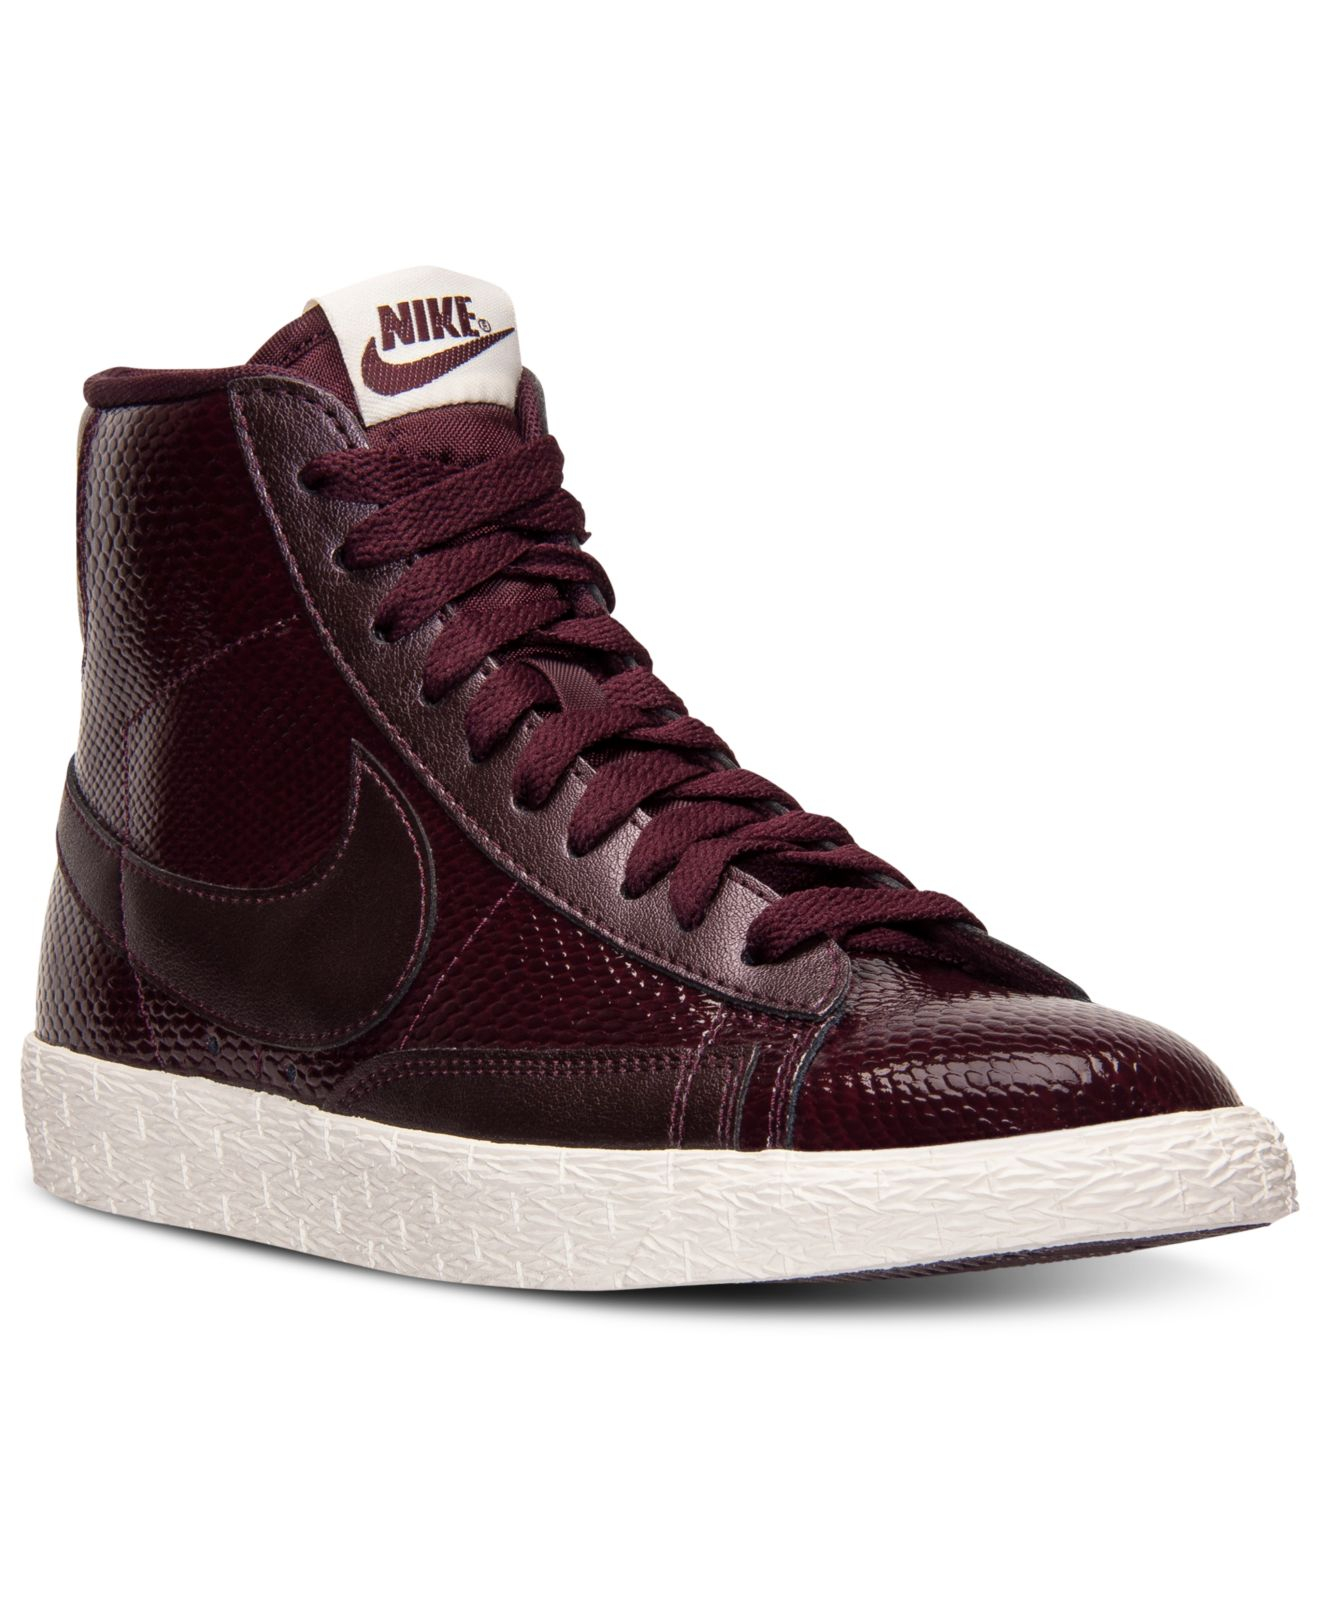 buy popular a06ac bb7c7 Nike Blazer Mid Premium Sneakers in Purple - Lyst